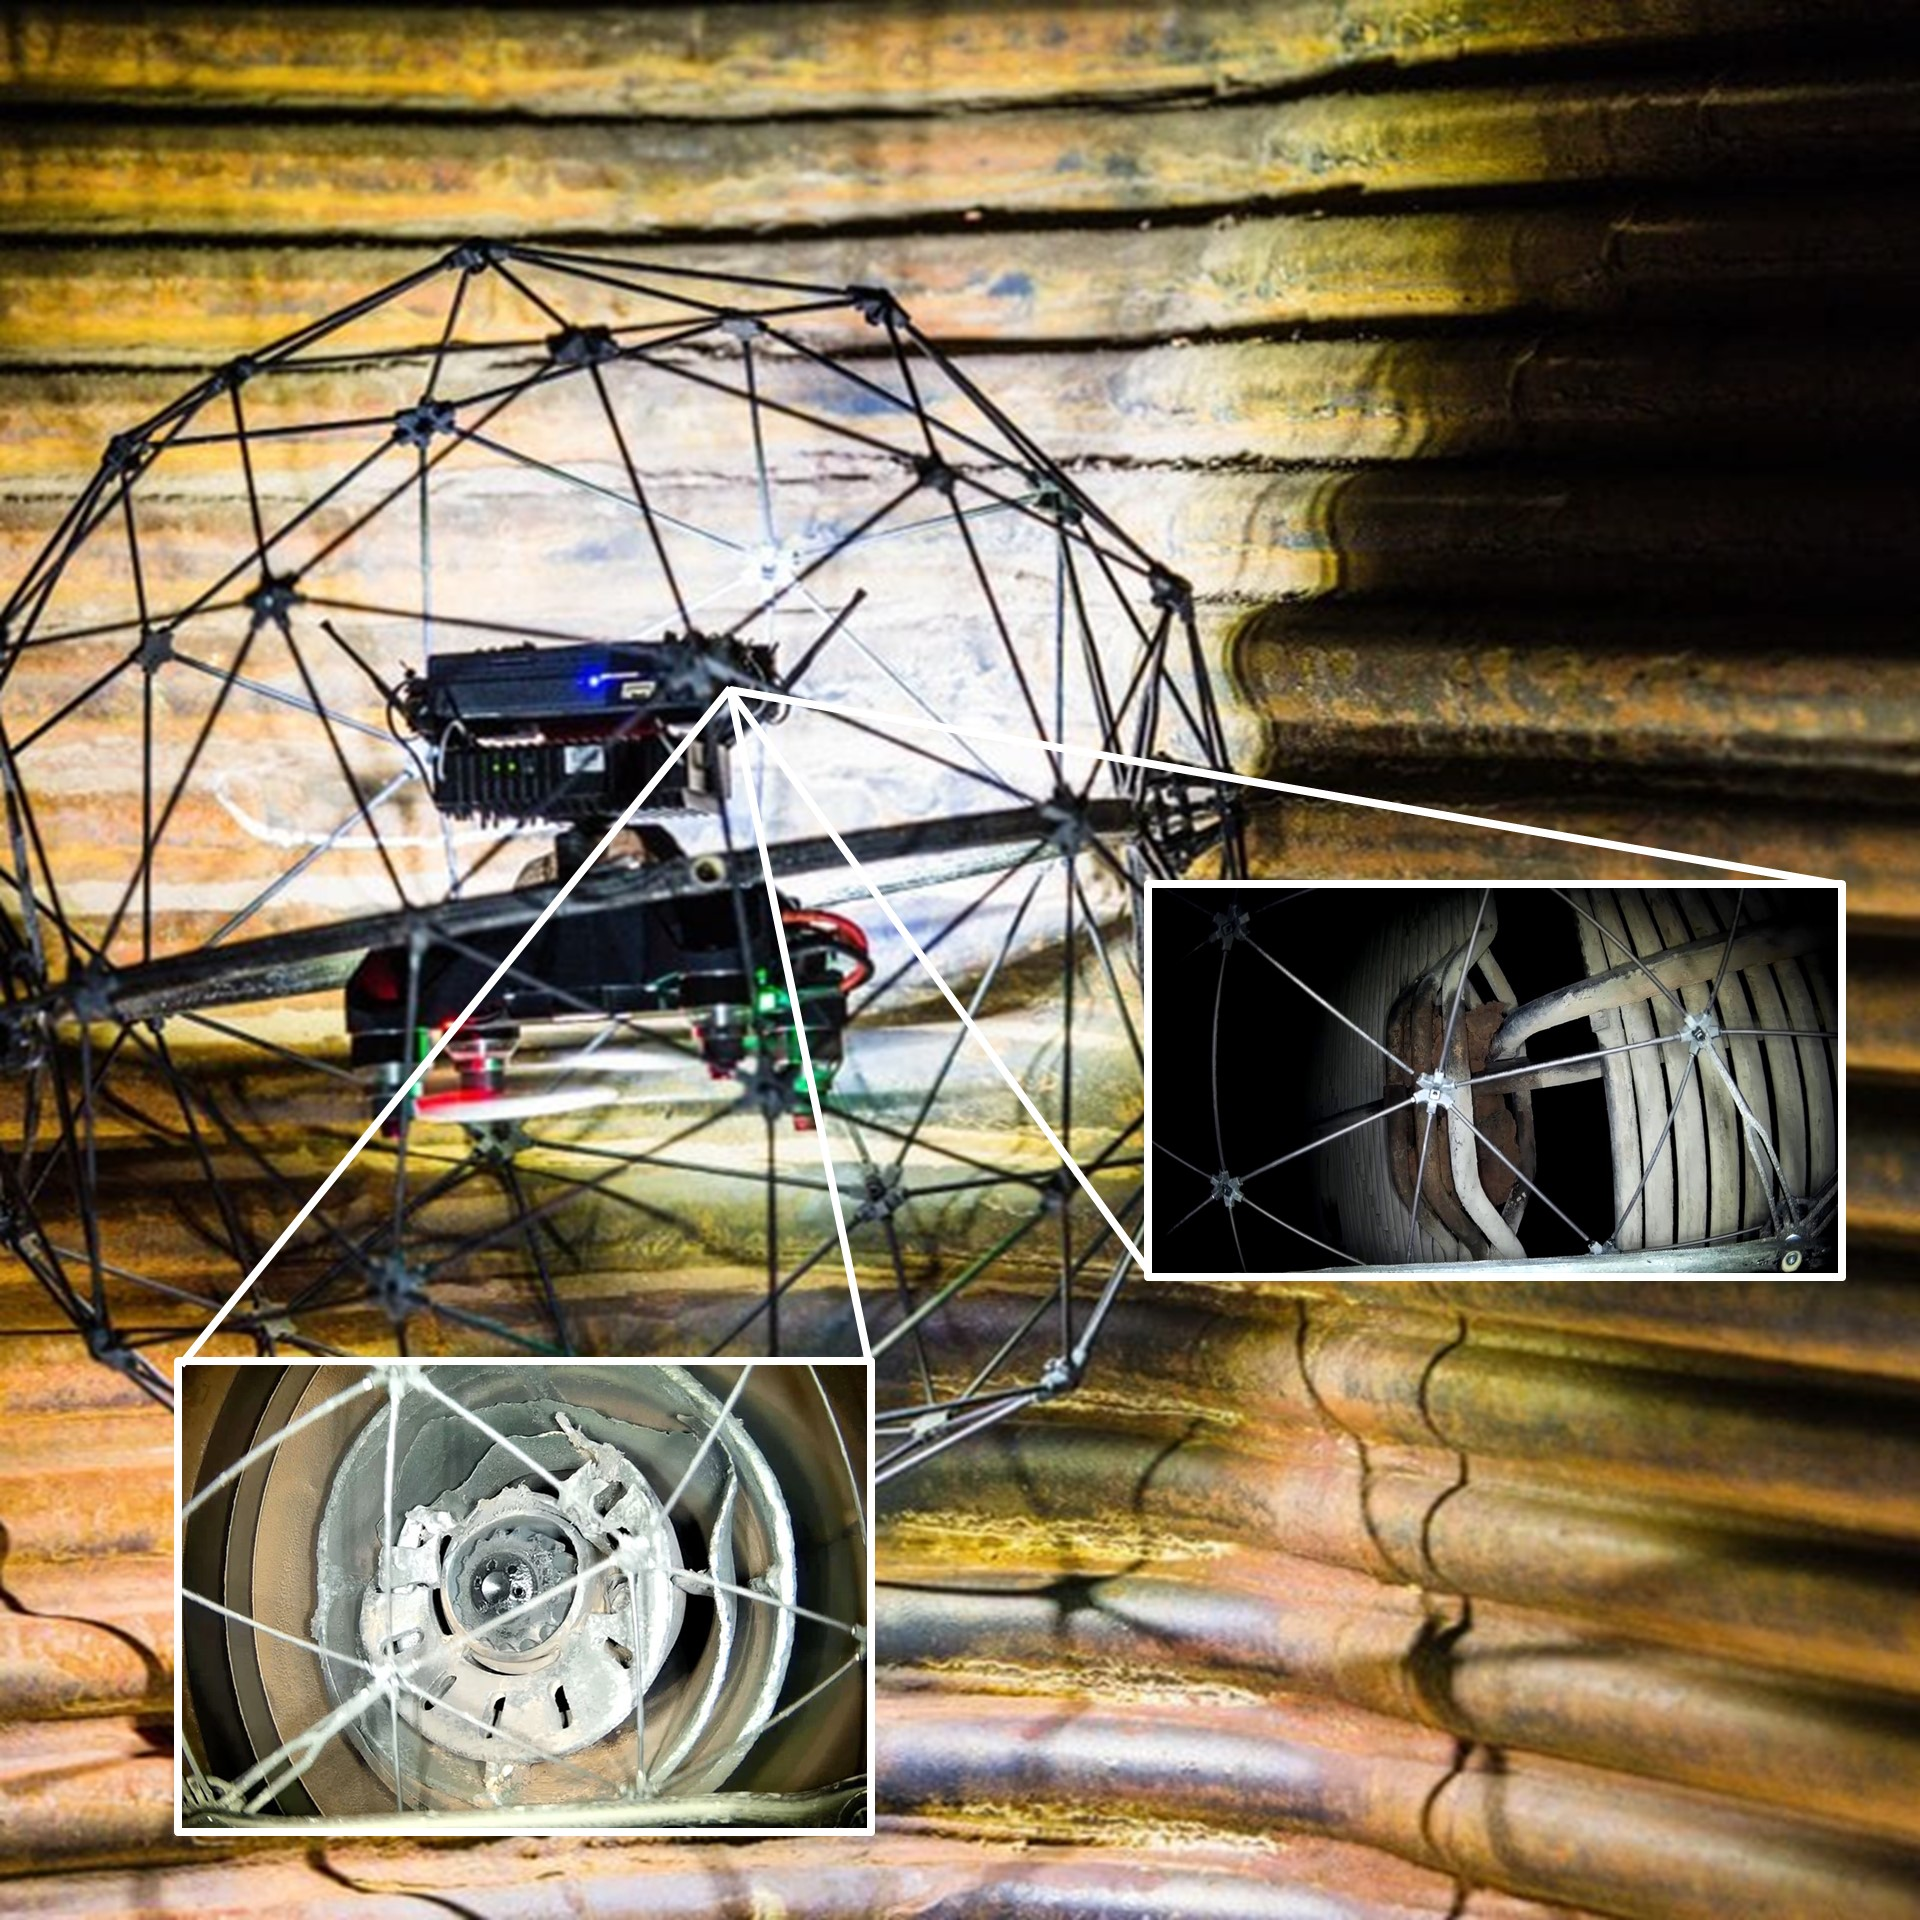 Terra Drone - Confined Space Inspection